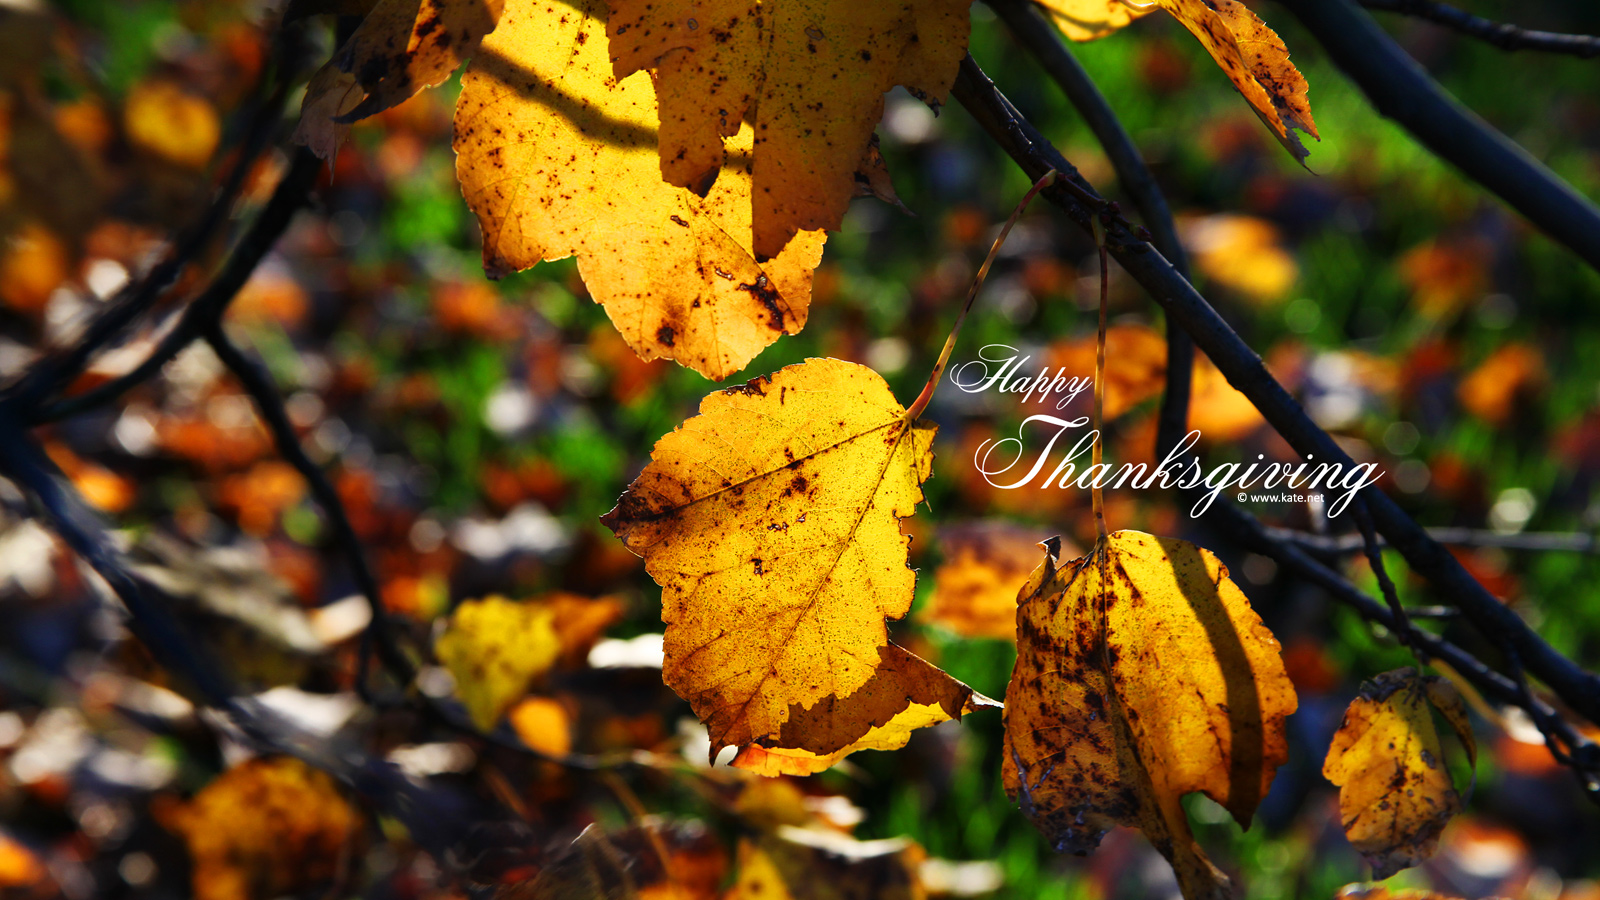 Free Computer Wallpaper Fall Leaves Thanksgiving Wallpapers By Kate Net Page 1